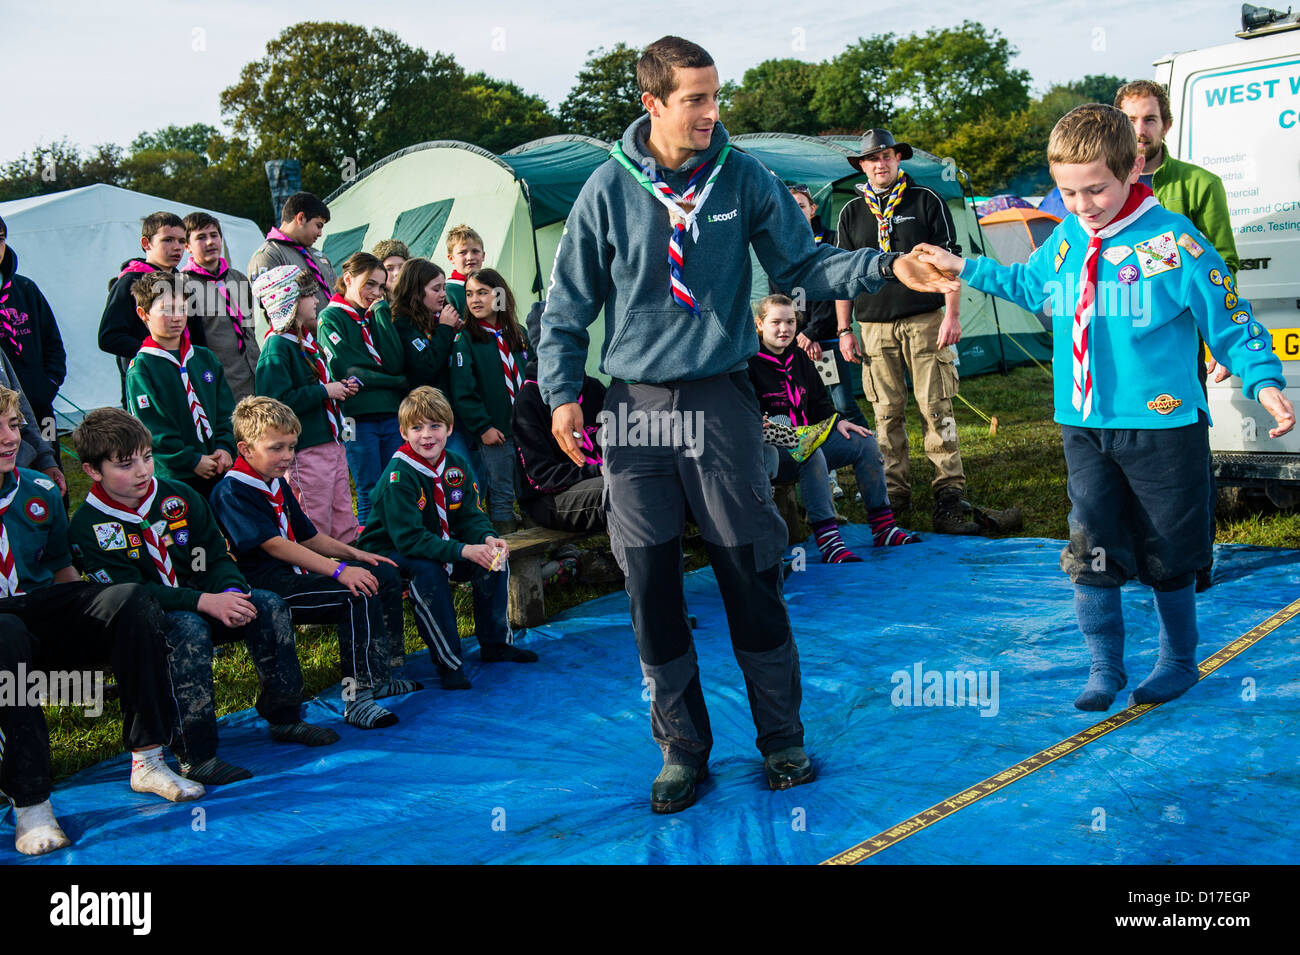 Boy Scout Uk Stock Photos &- Boy Scout Uk Stock Images - Page 2 - Alamy